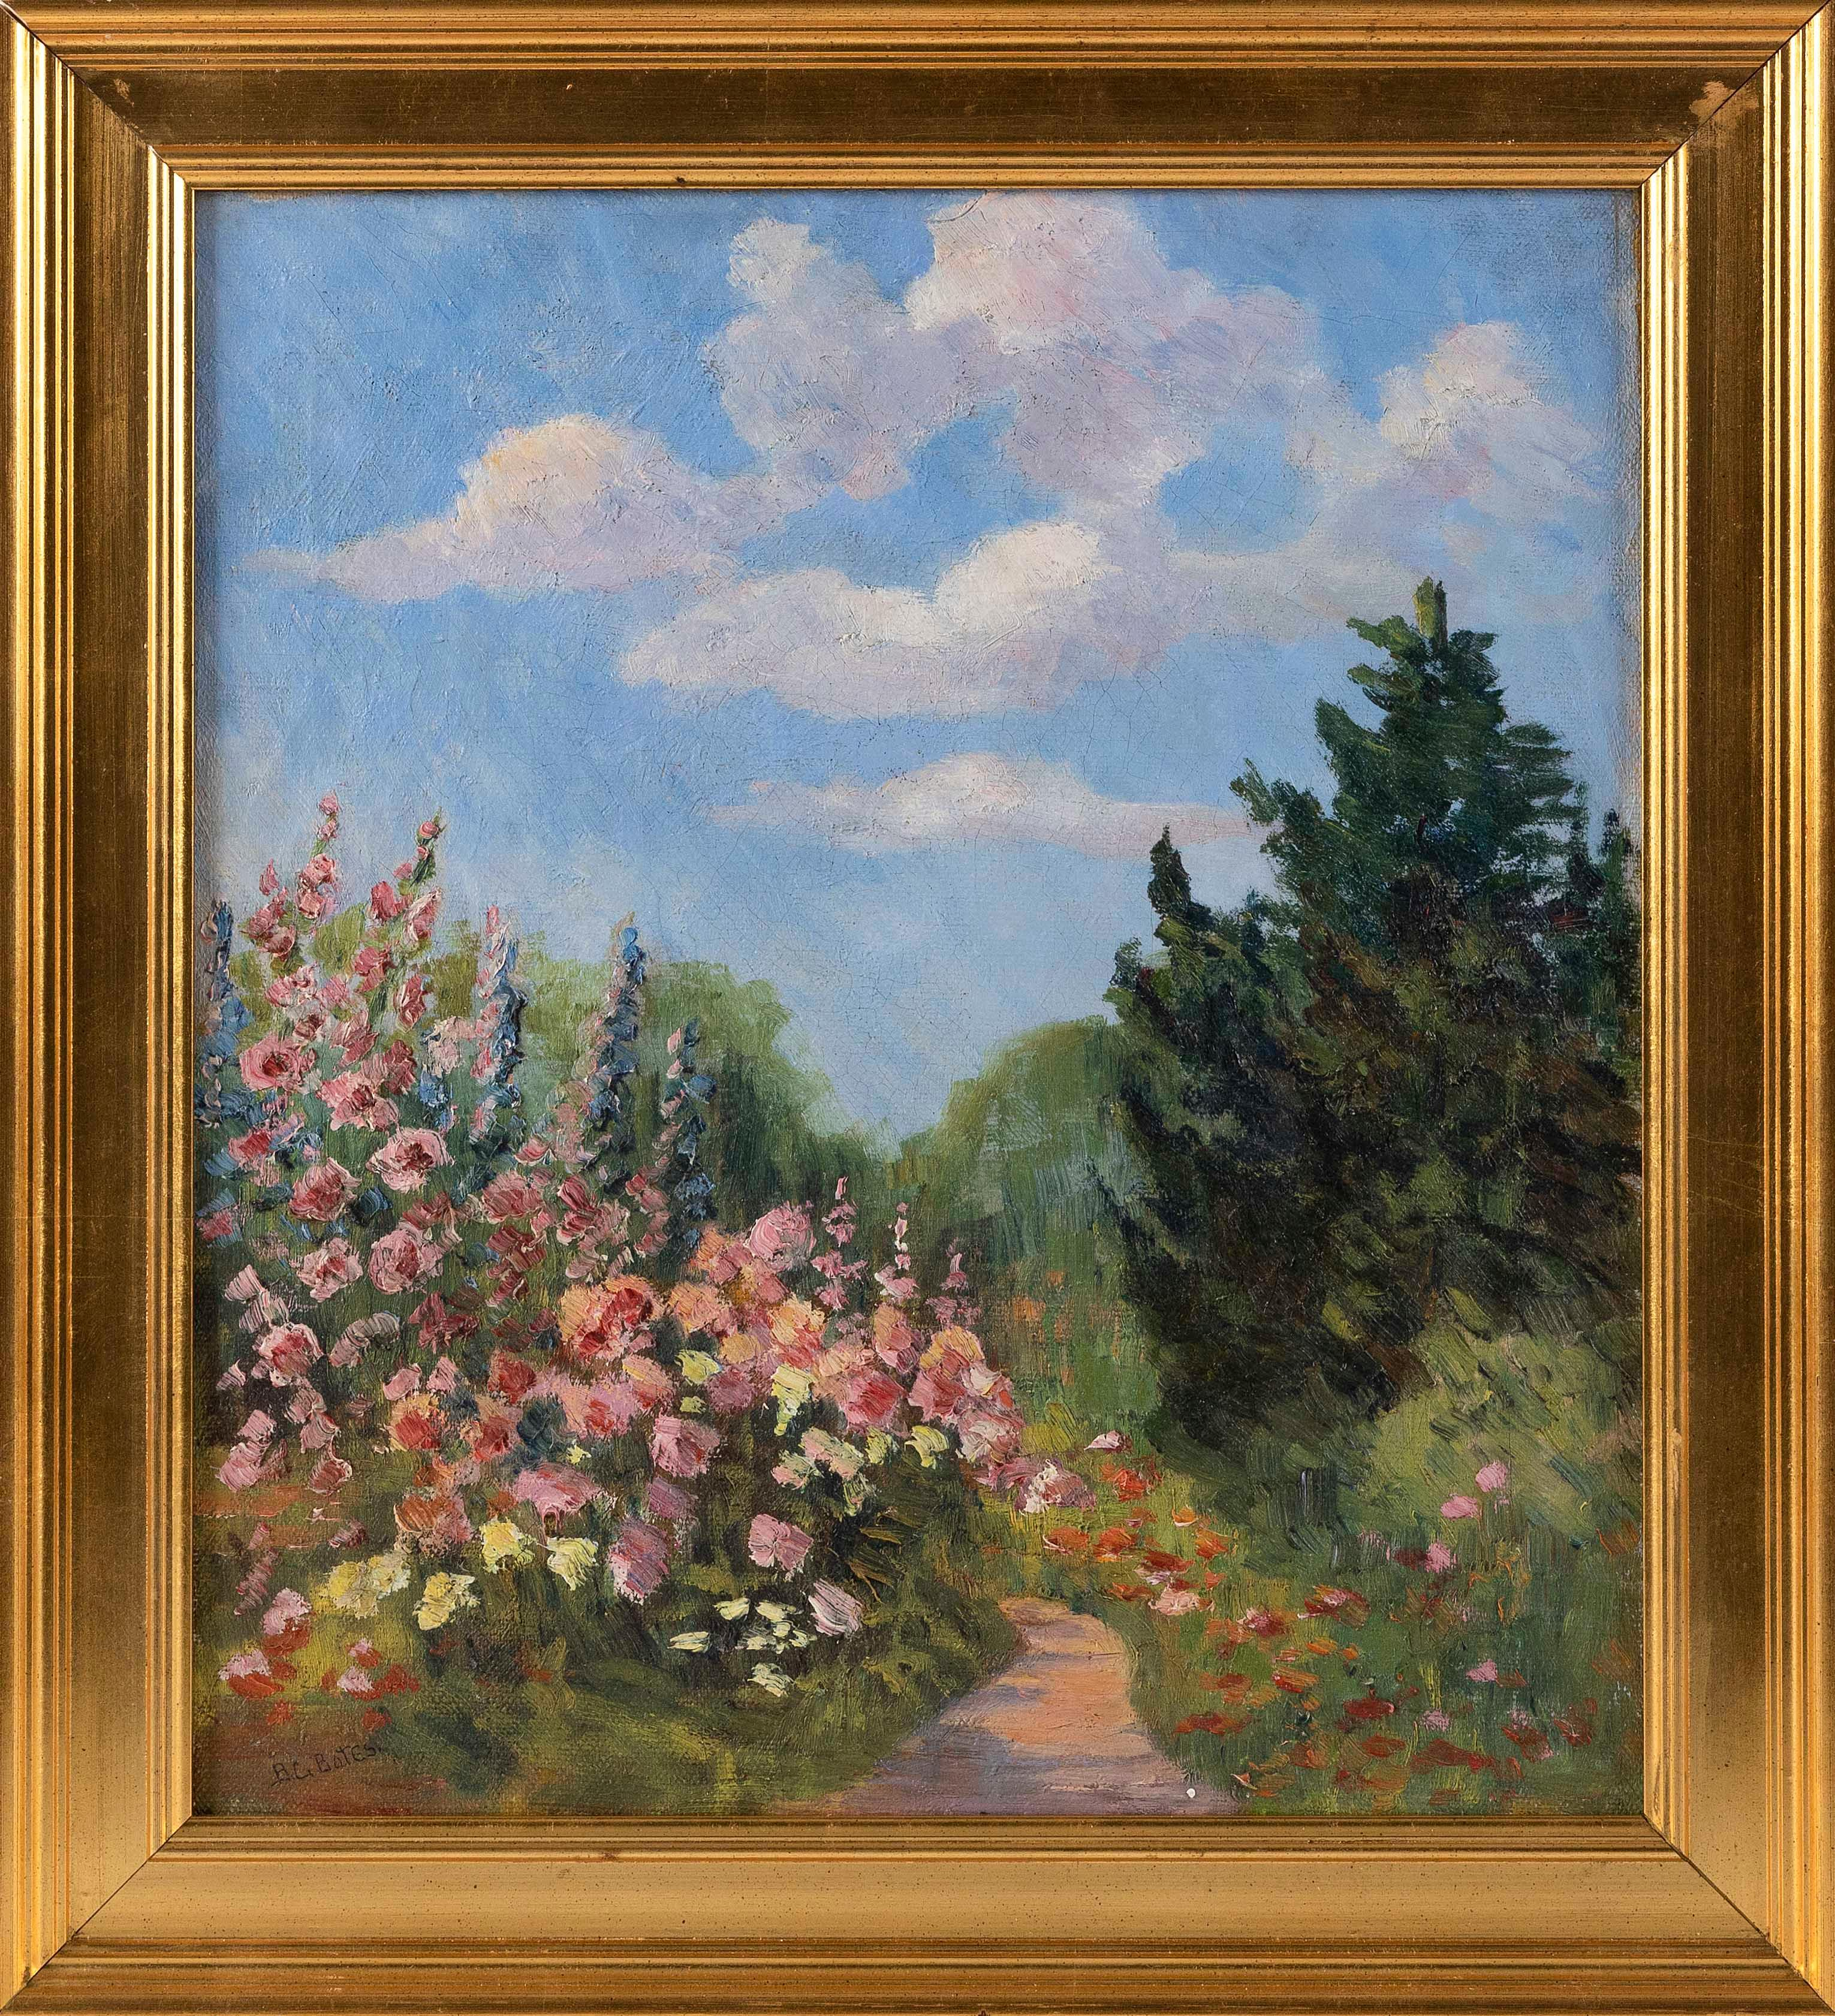 "BERTHA CORSON DAY BATES, Delaware/Pennsylvania, 1875-1968, Flower-lined path., Oil on canvas, 18"" x 16"". Framed 22"" x 20""."